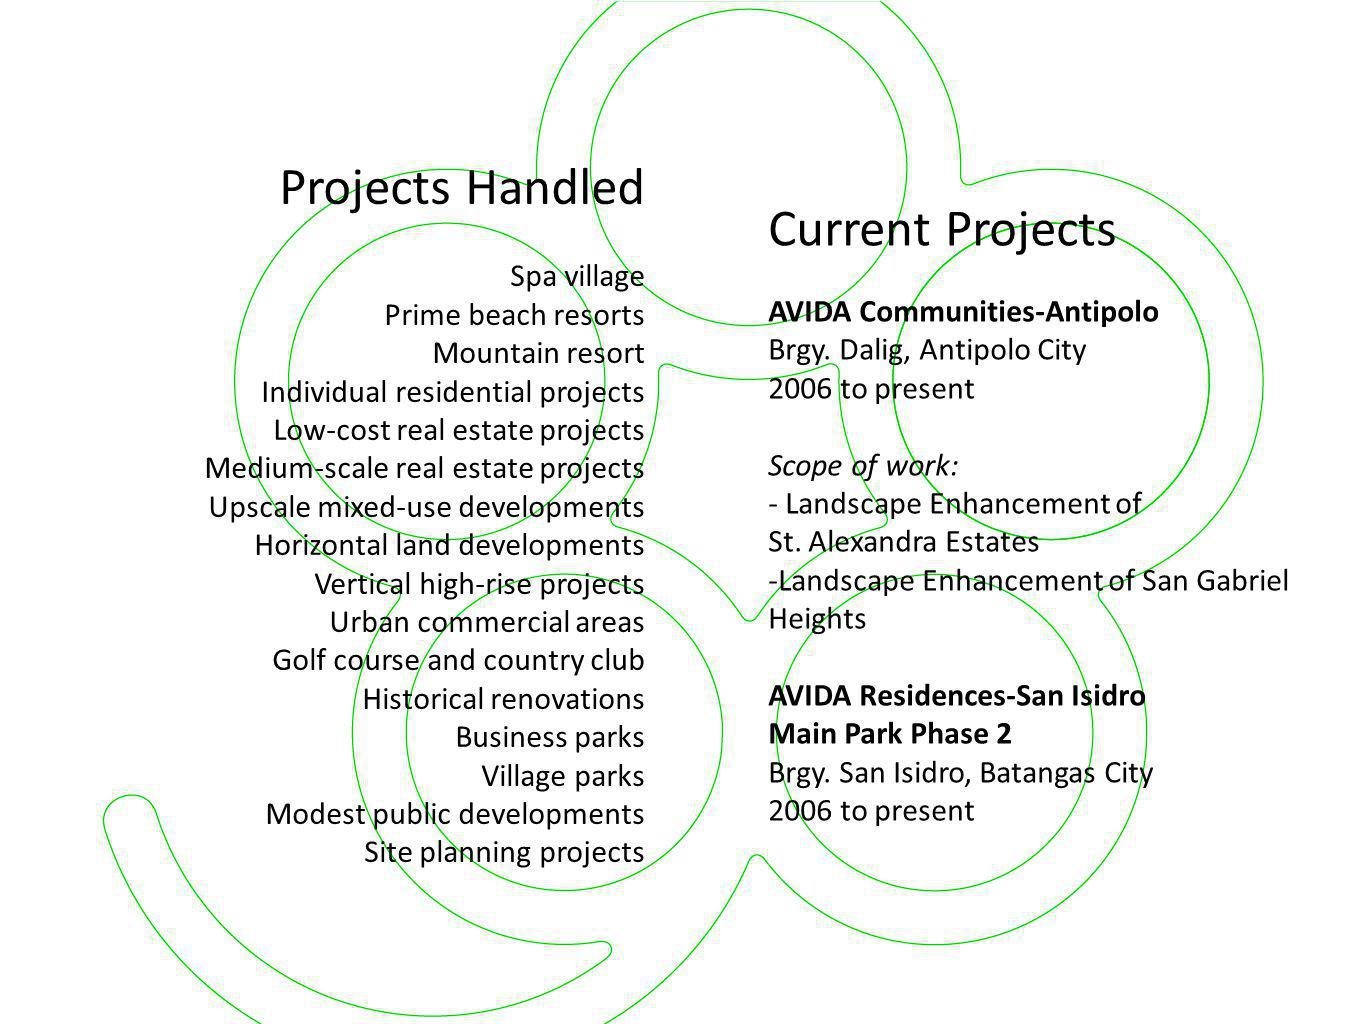 Projects Handled Current Projects Spa village Prime beach resorts